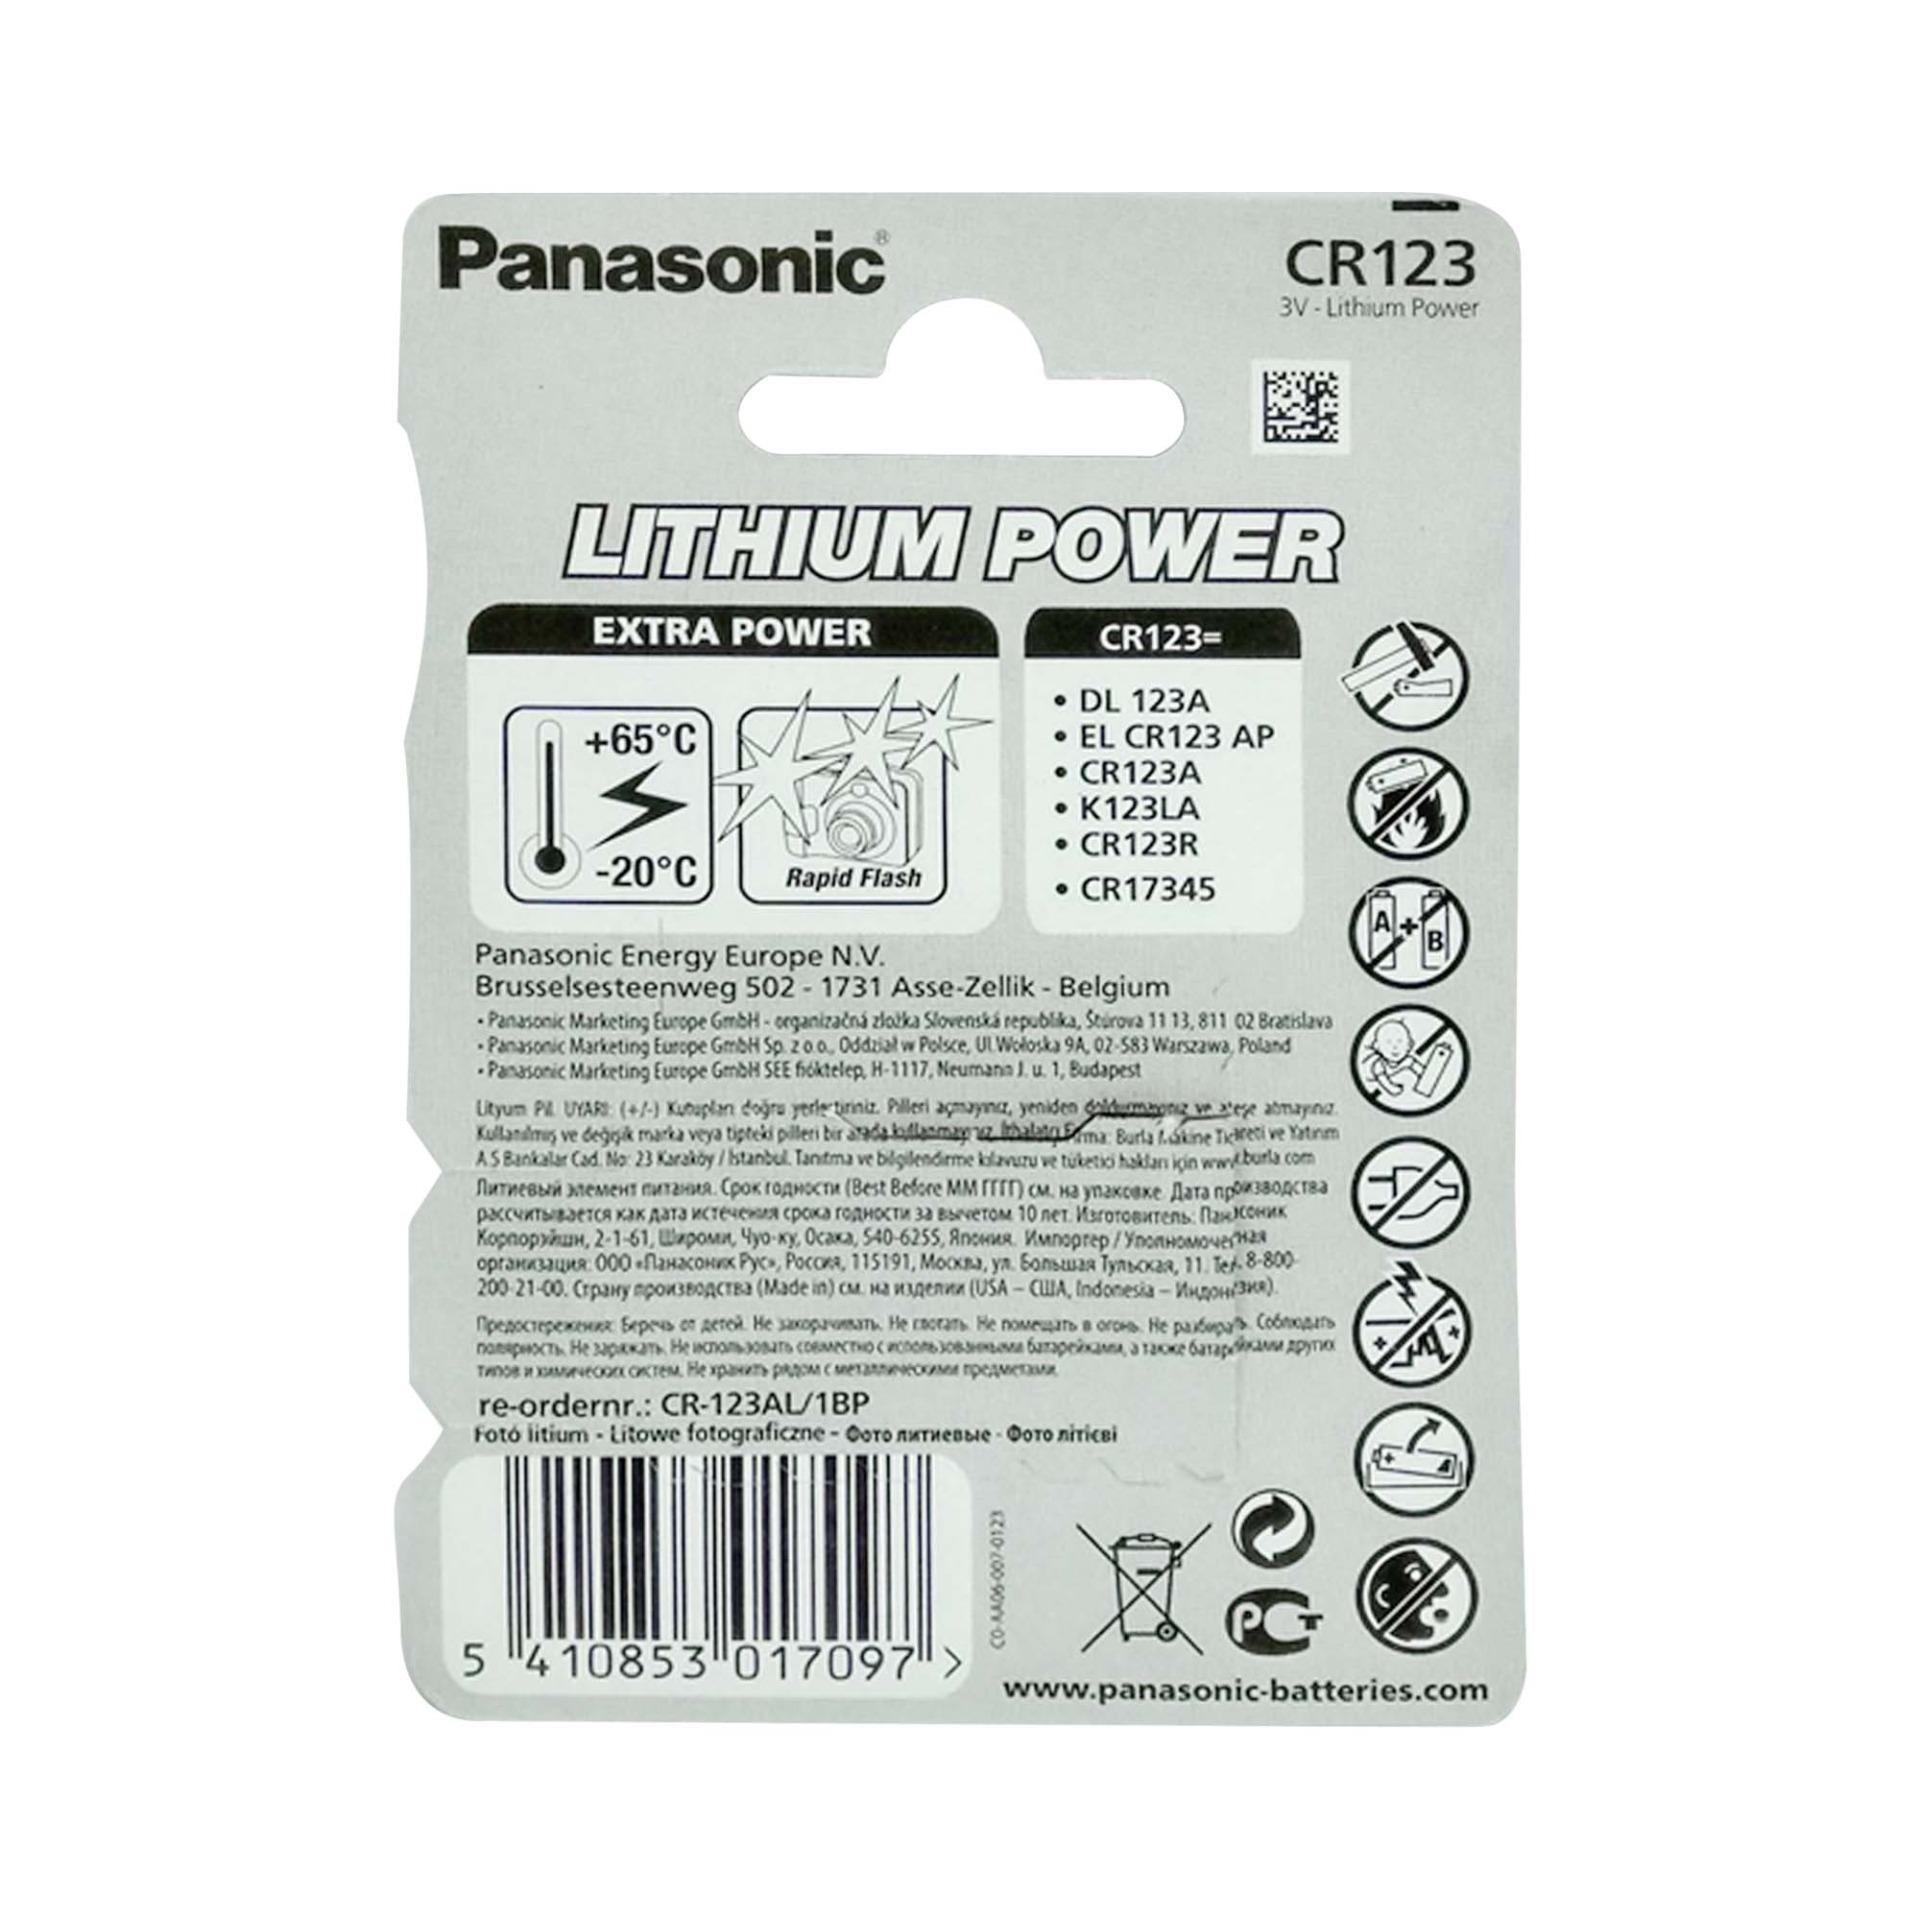 Panasonic Lithium Battery CR123A - thumbnail 1